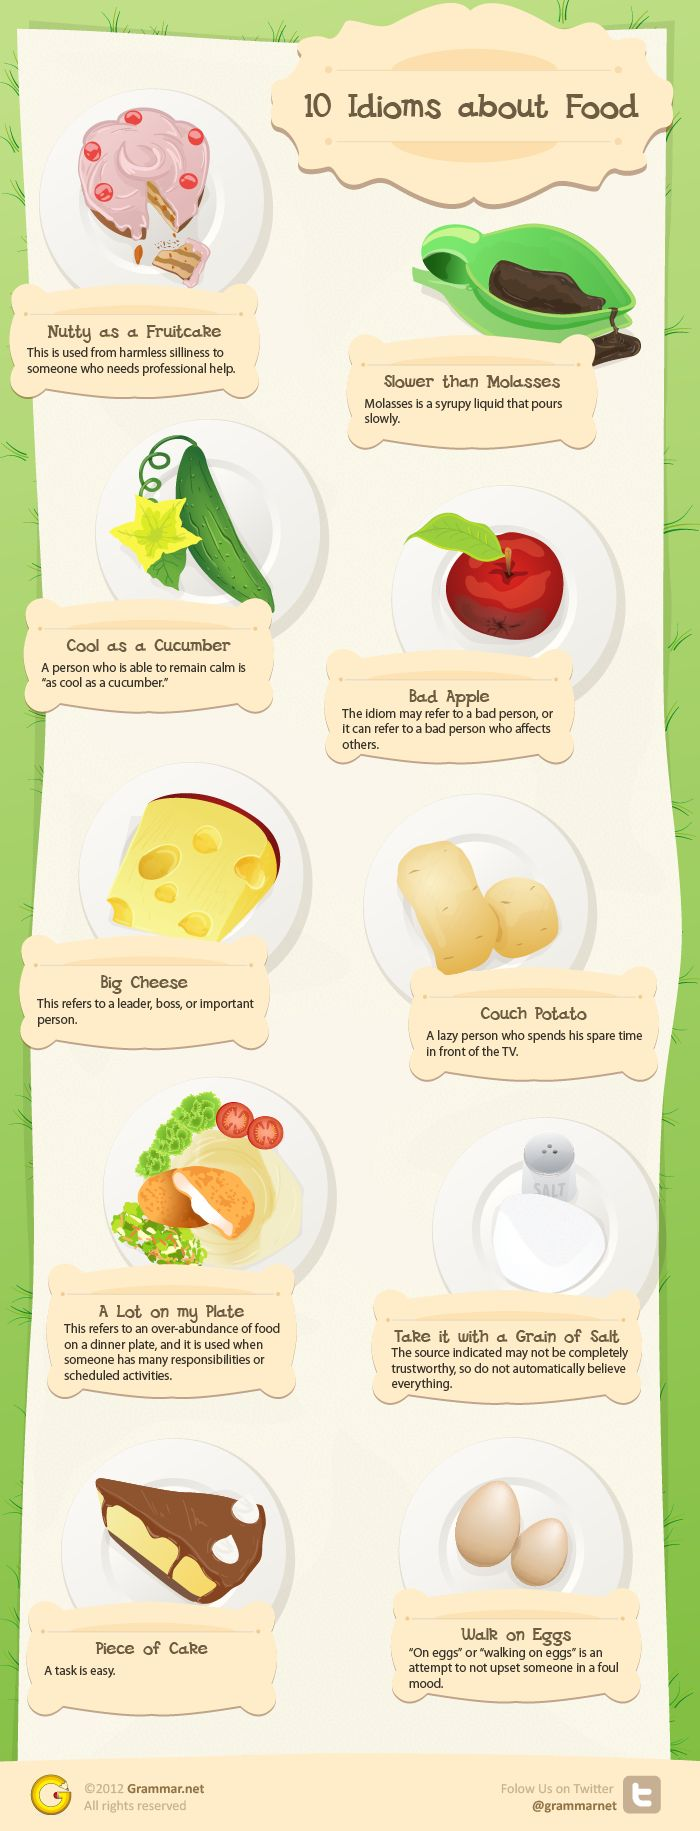 Fresh on IGM  Food Idioms English: English lesson No 10. Talk before eat them. 10 popular and tasty food related idioms to turn your listeners appetite on.   http://infographicsmania.com/food-idioms-english/